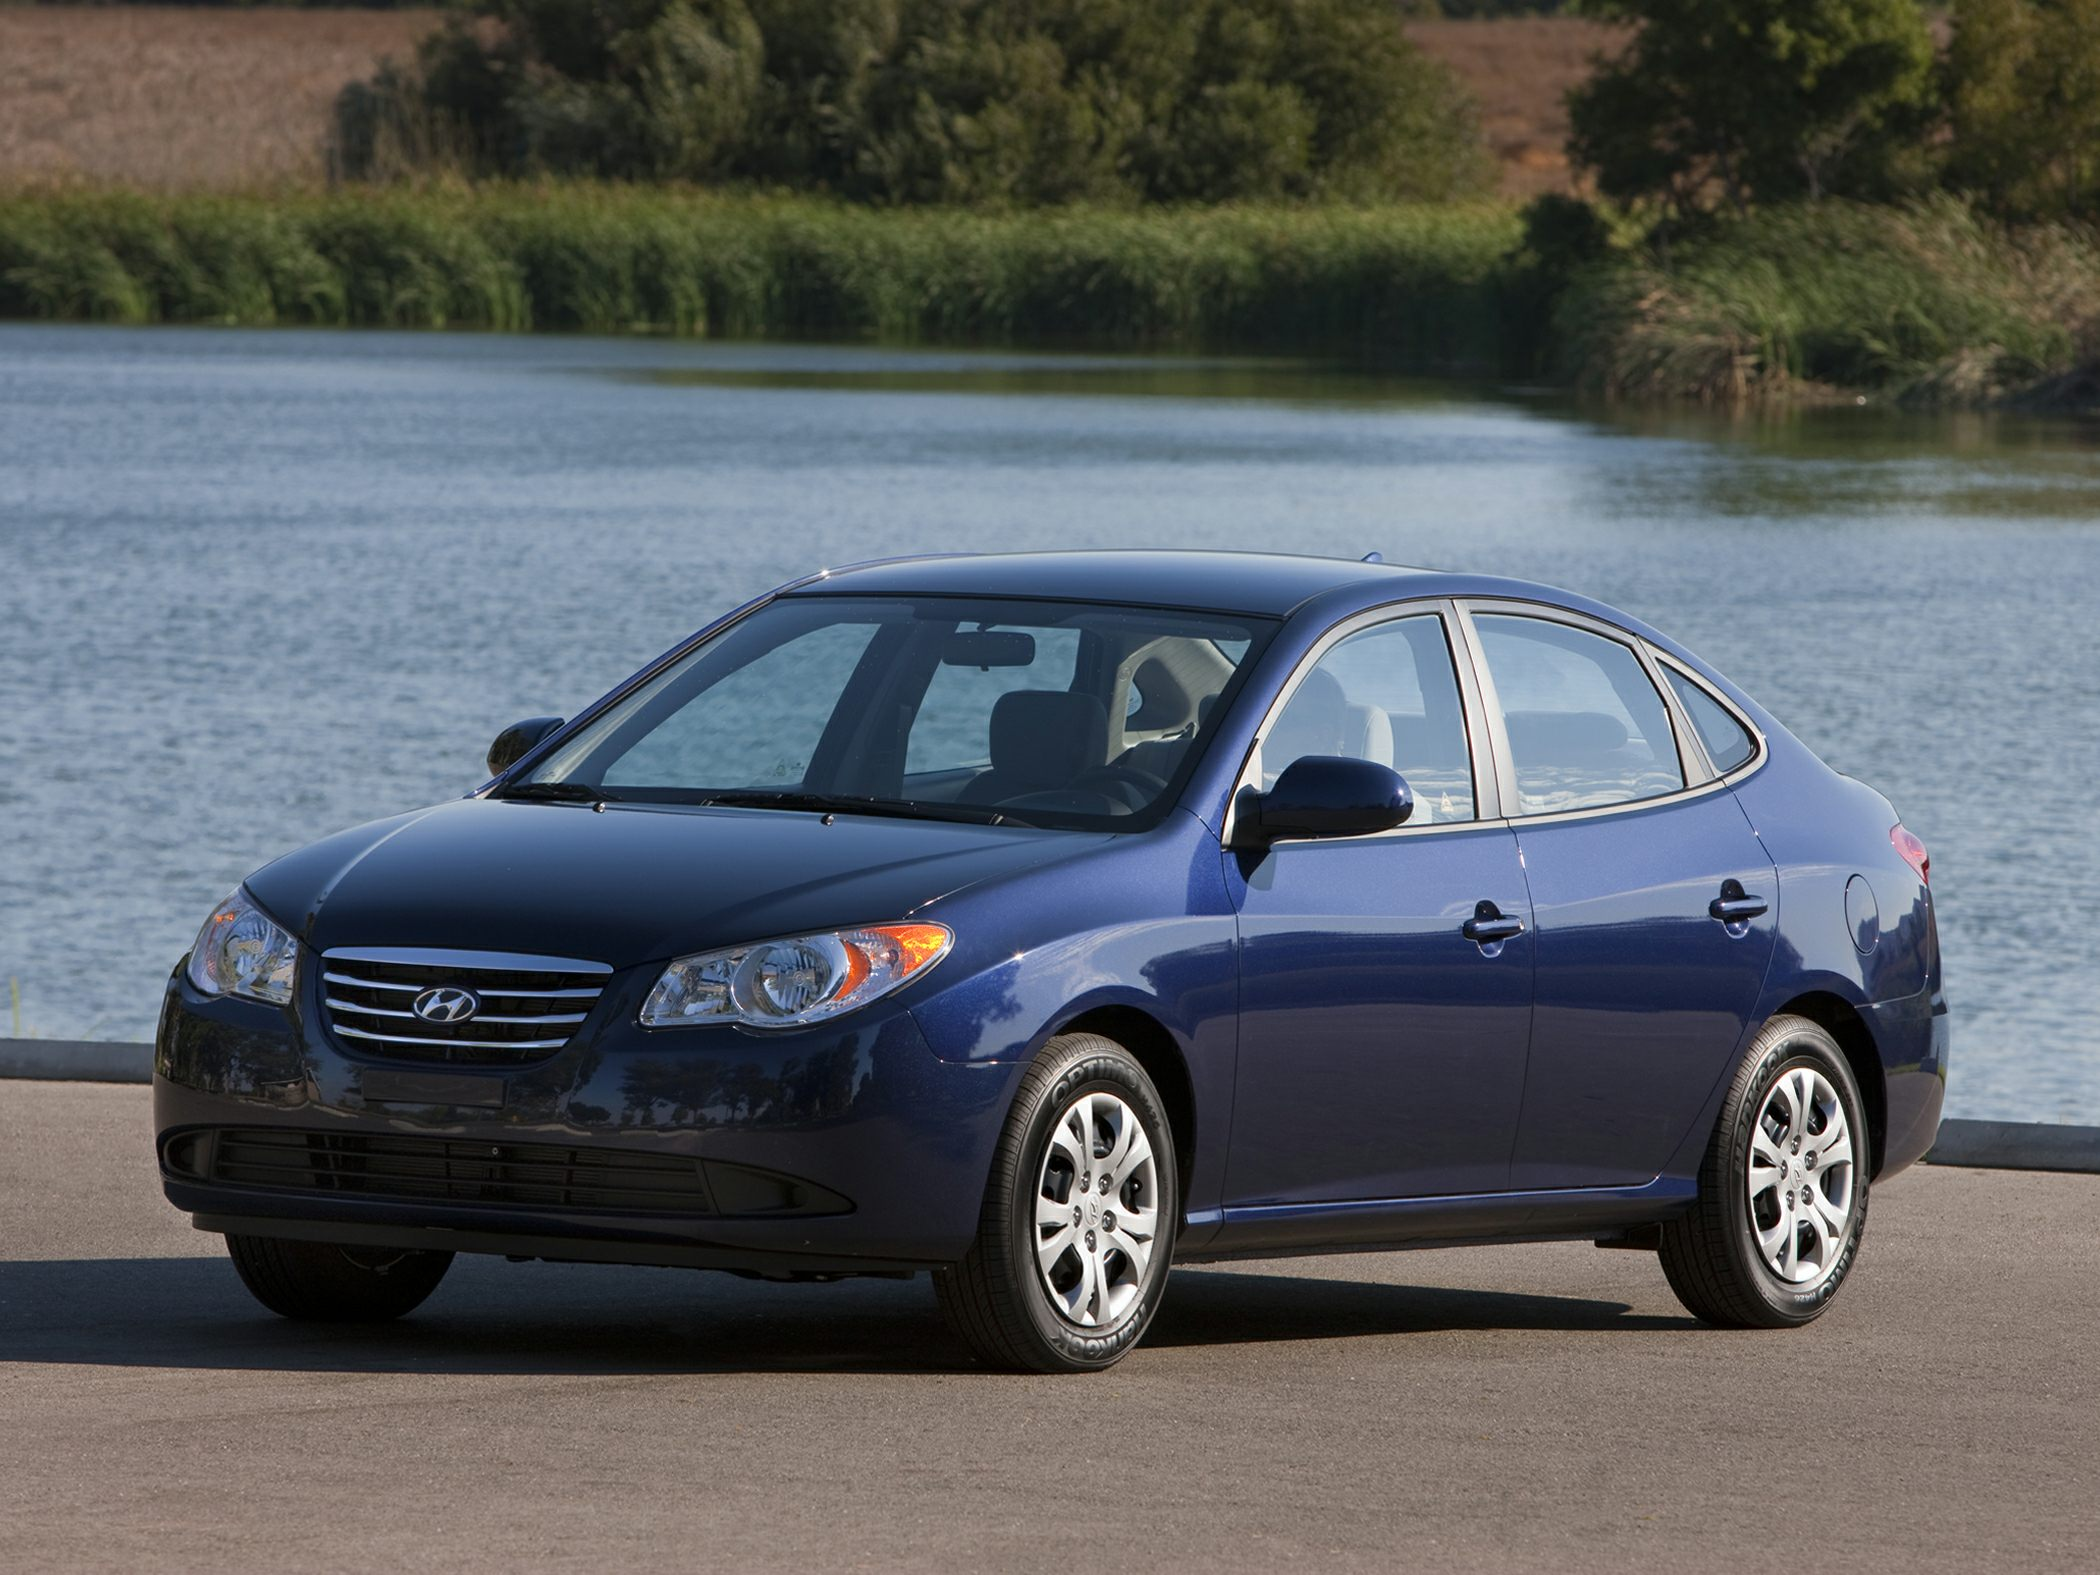 2010 Hyundai Elantra GLS Gray Super gas saver One-owner New Arrival Do you want it all especia